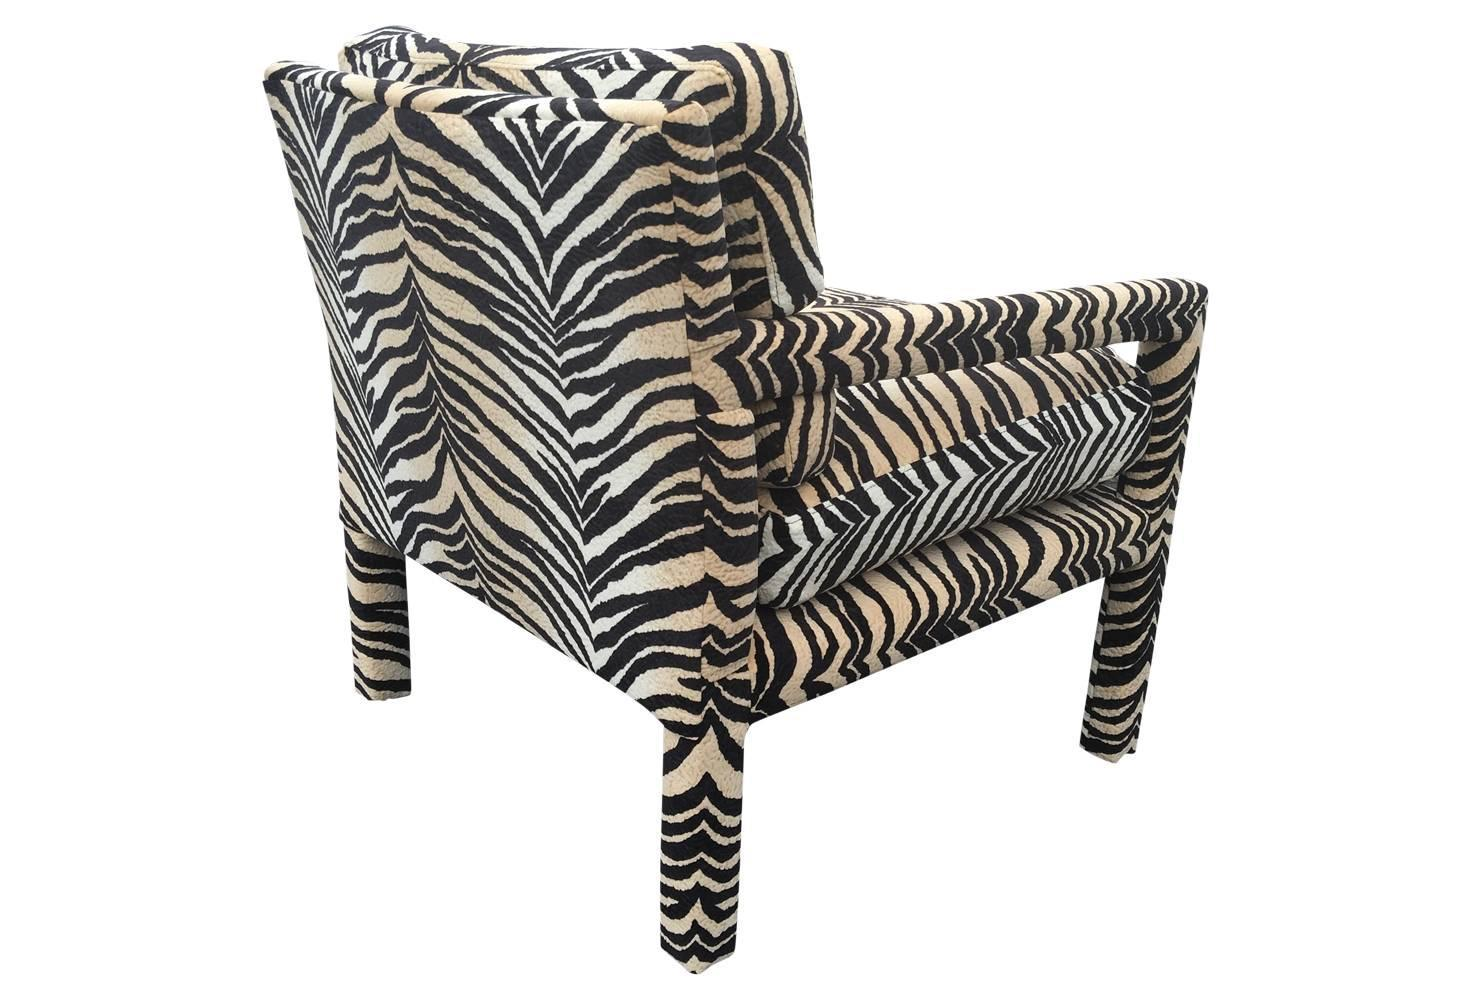 tiger print chair west elm everett review sexy striped parsons at 1stdibs